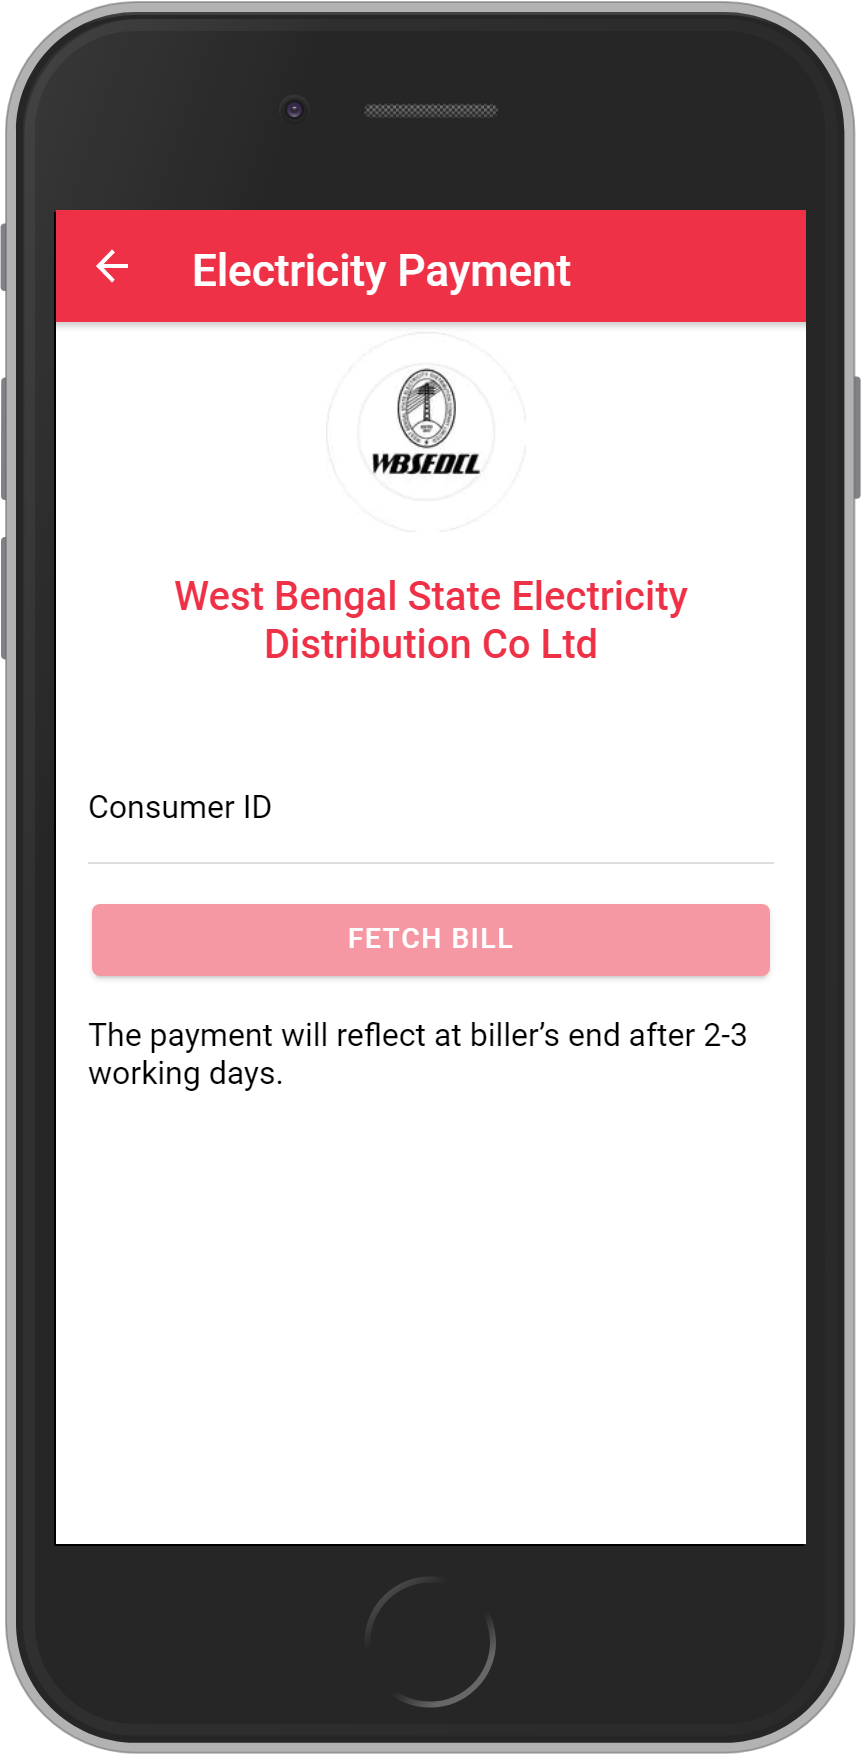 Get UNLIMITED <b>0.1%</b> CASHBACK on WBSEDCL Bill Payment.